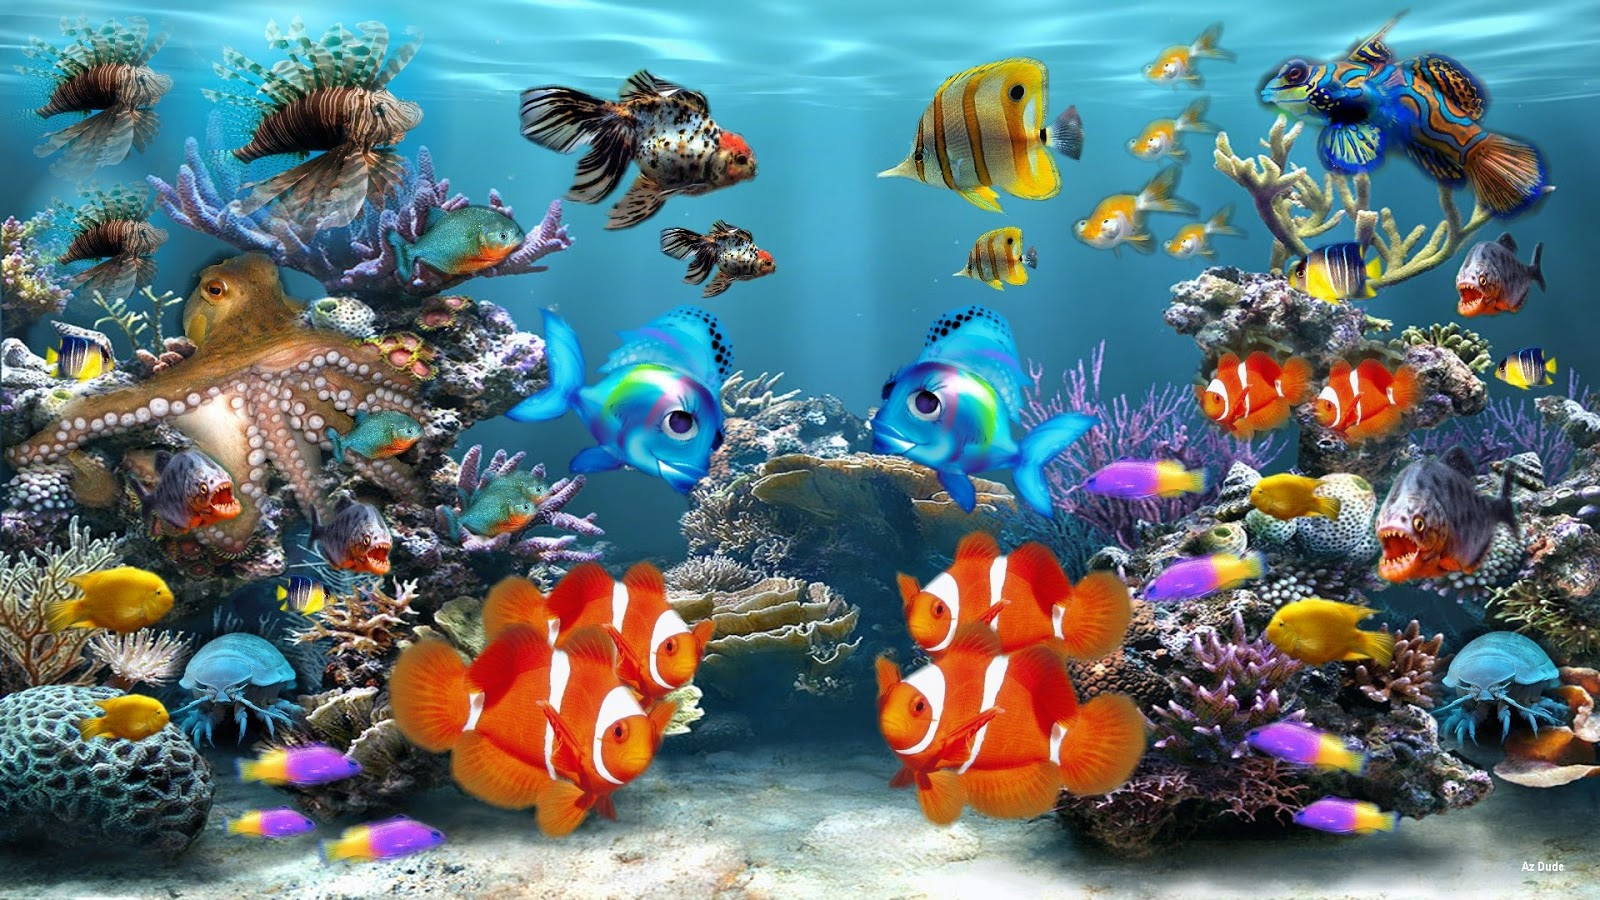 Aquarium Hd Wallpaper, Aquarium Wallpaper